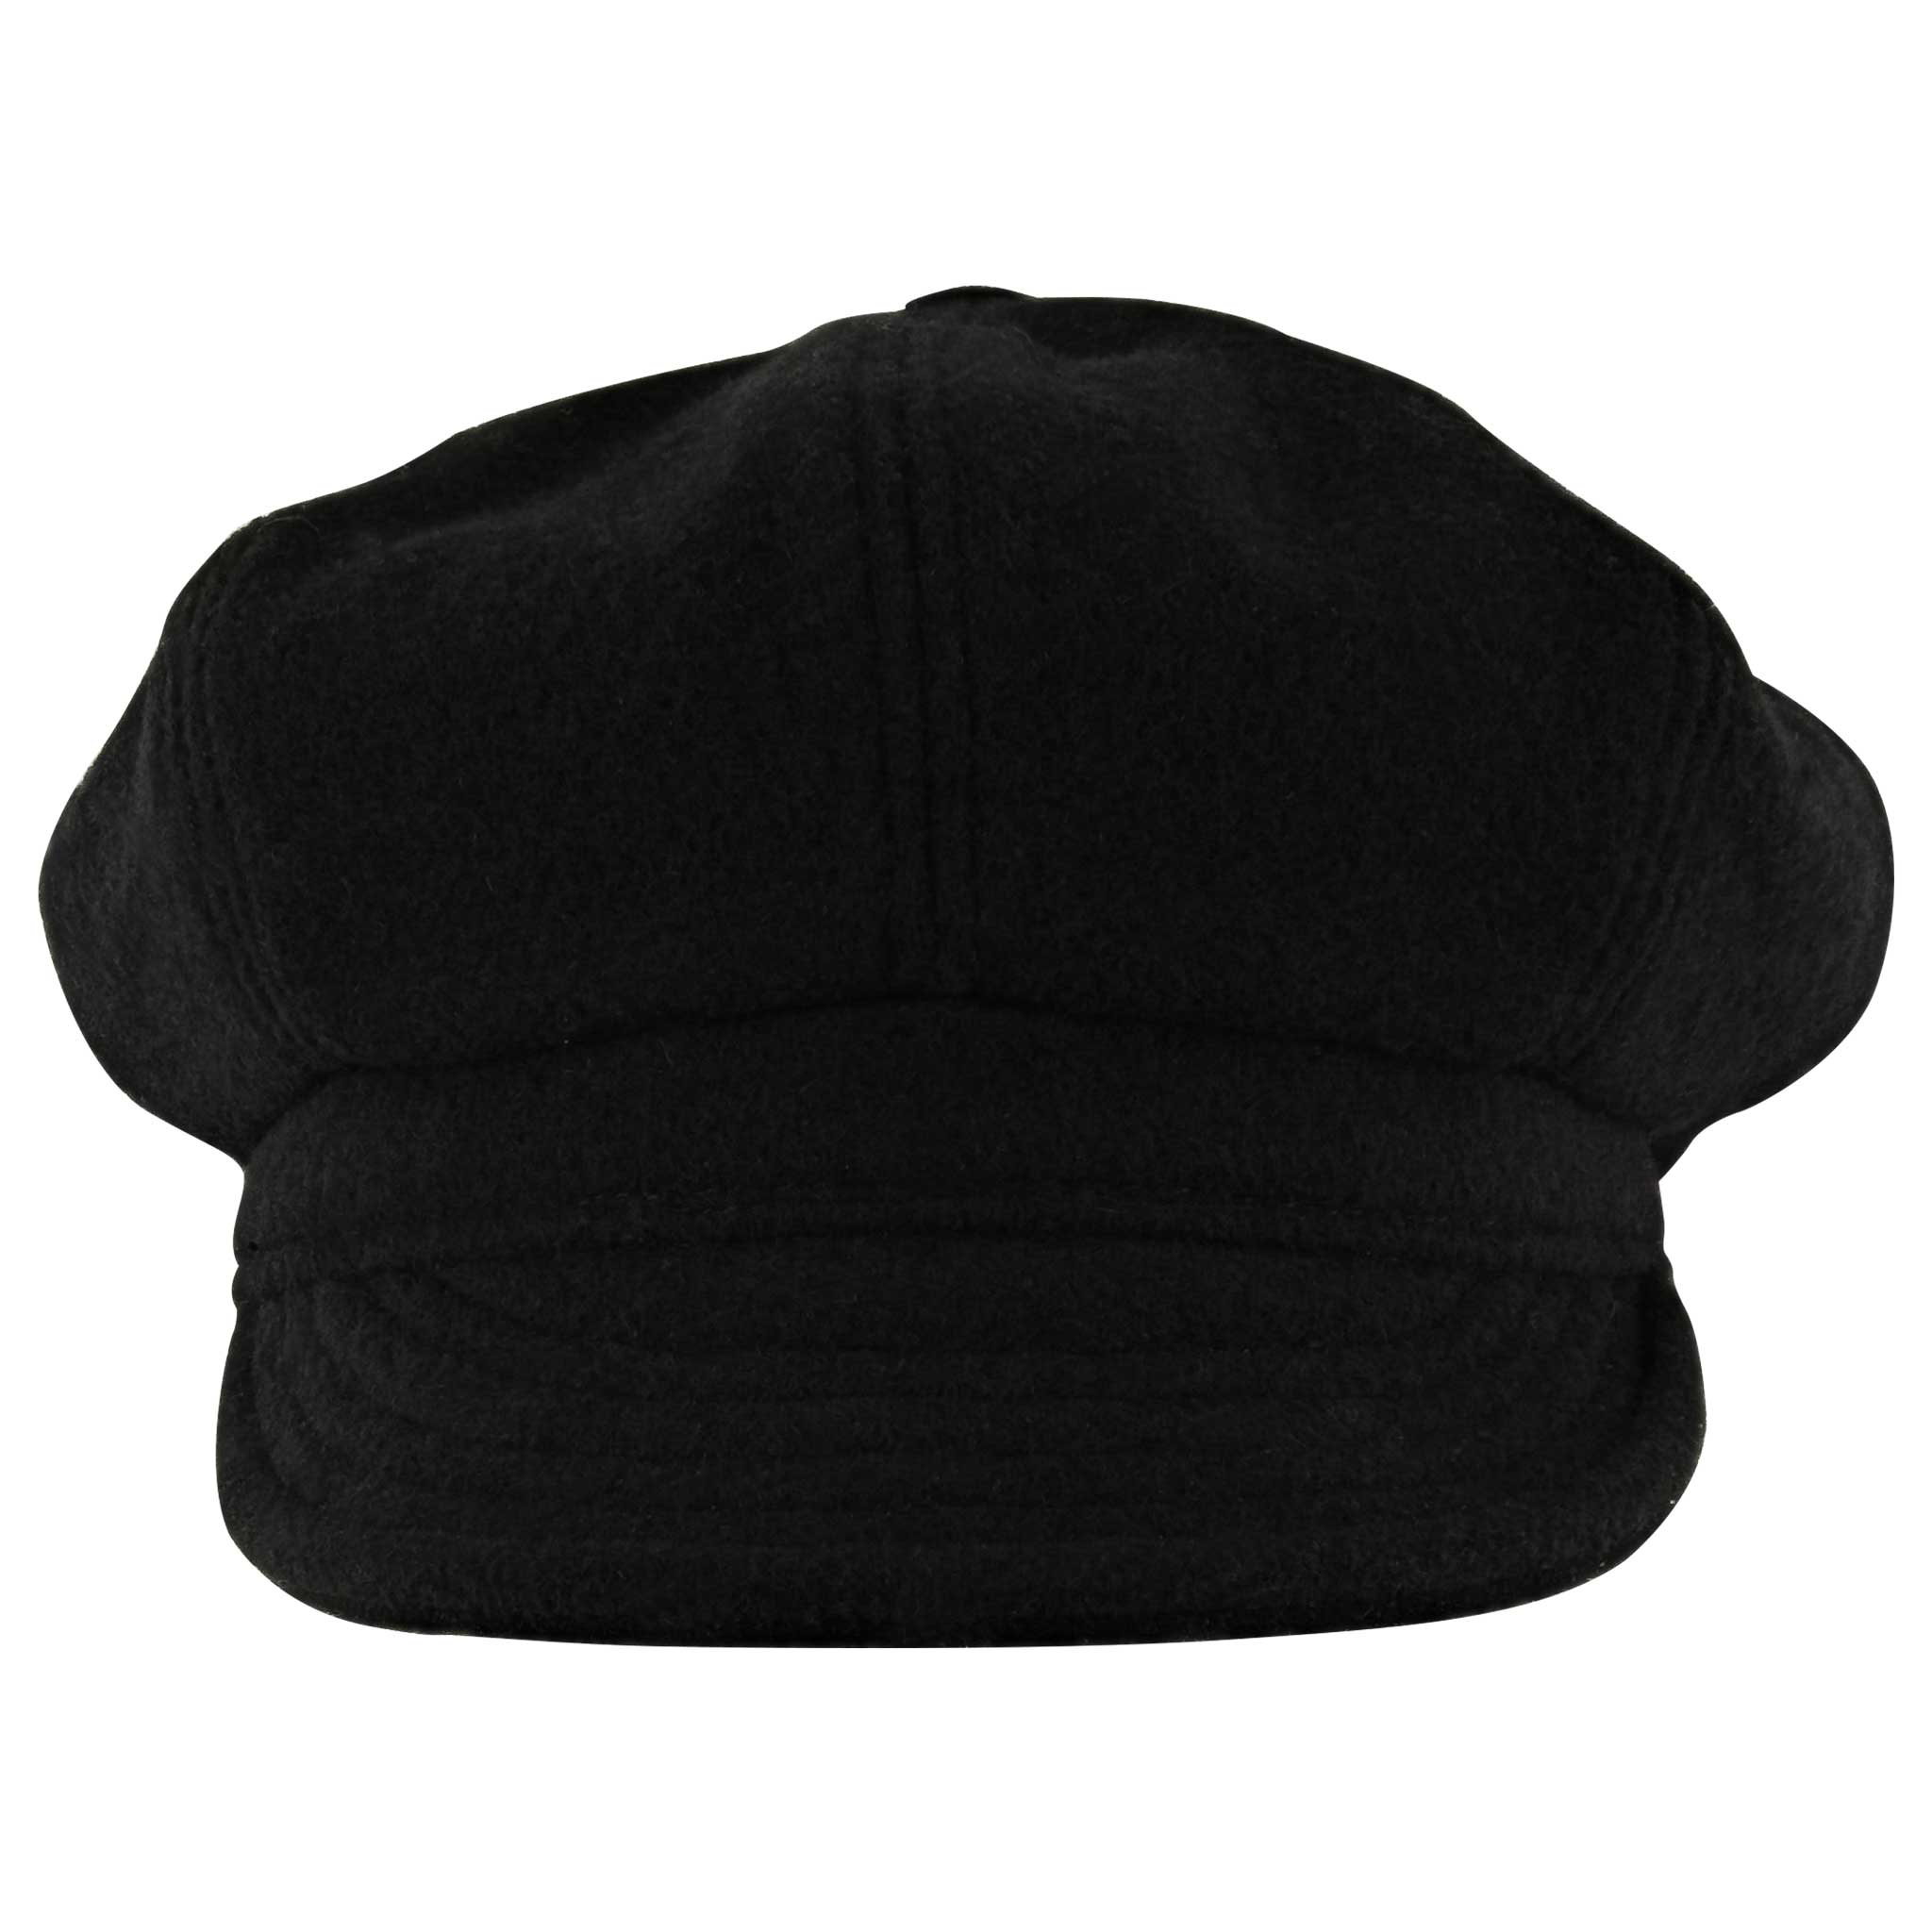 ... New York Hat Company Spit Fire Wool in black color ... 2fedb5266c54